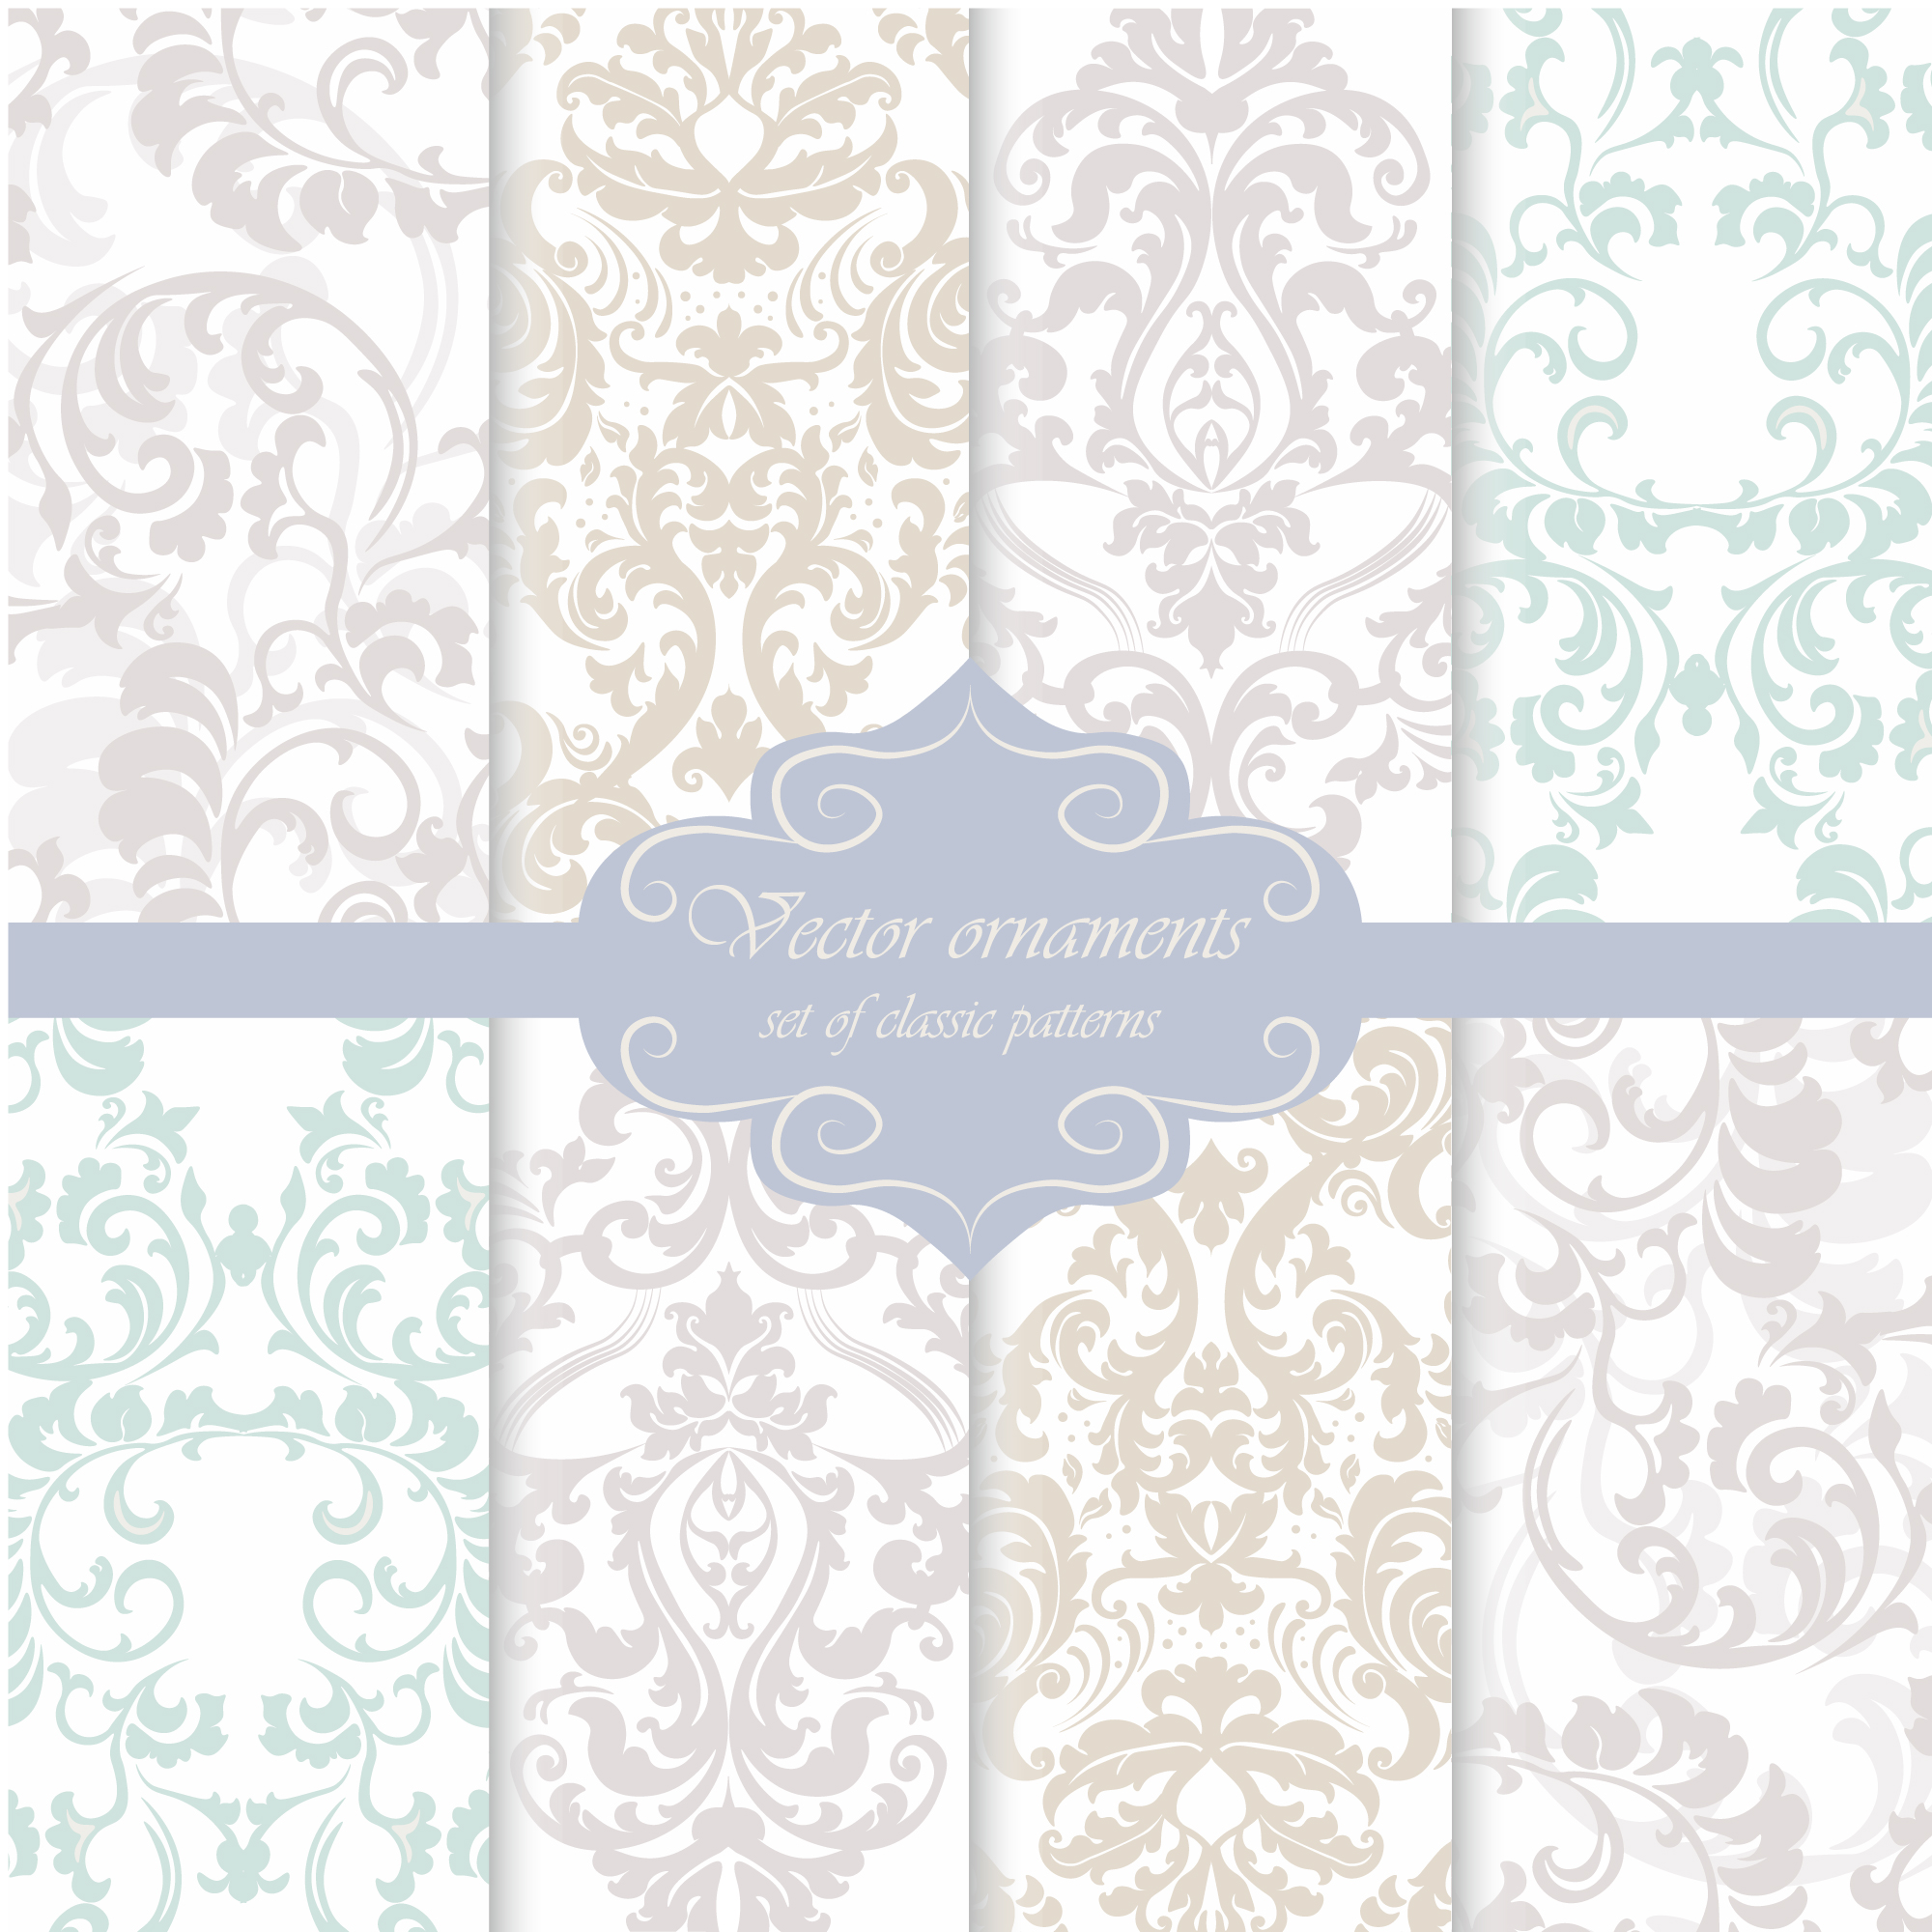 Ornamental pattern background collection